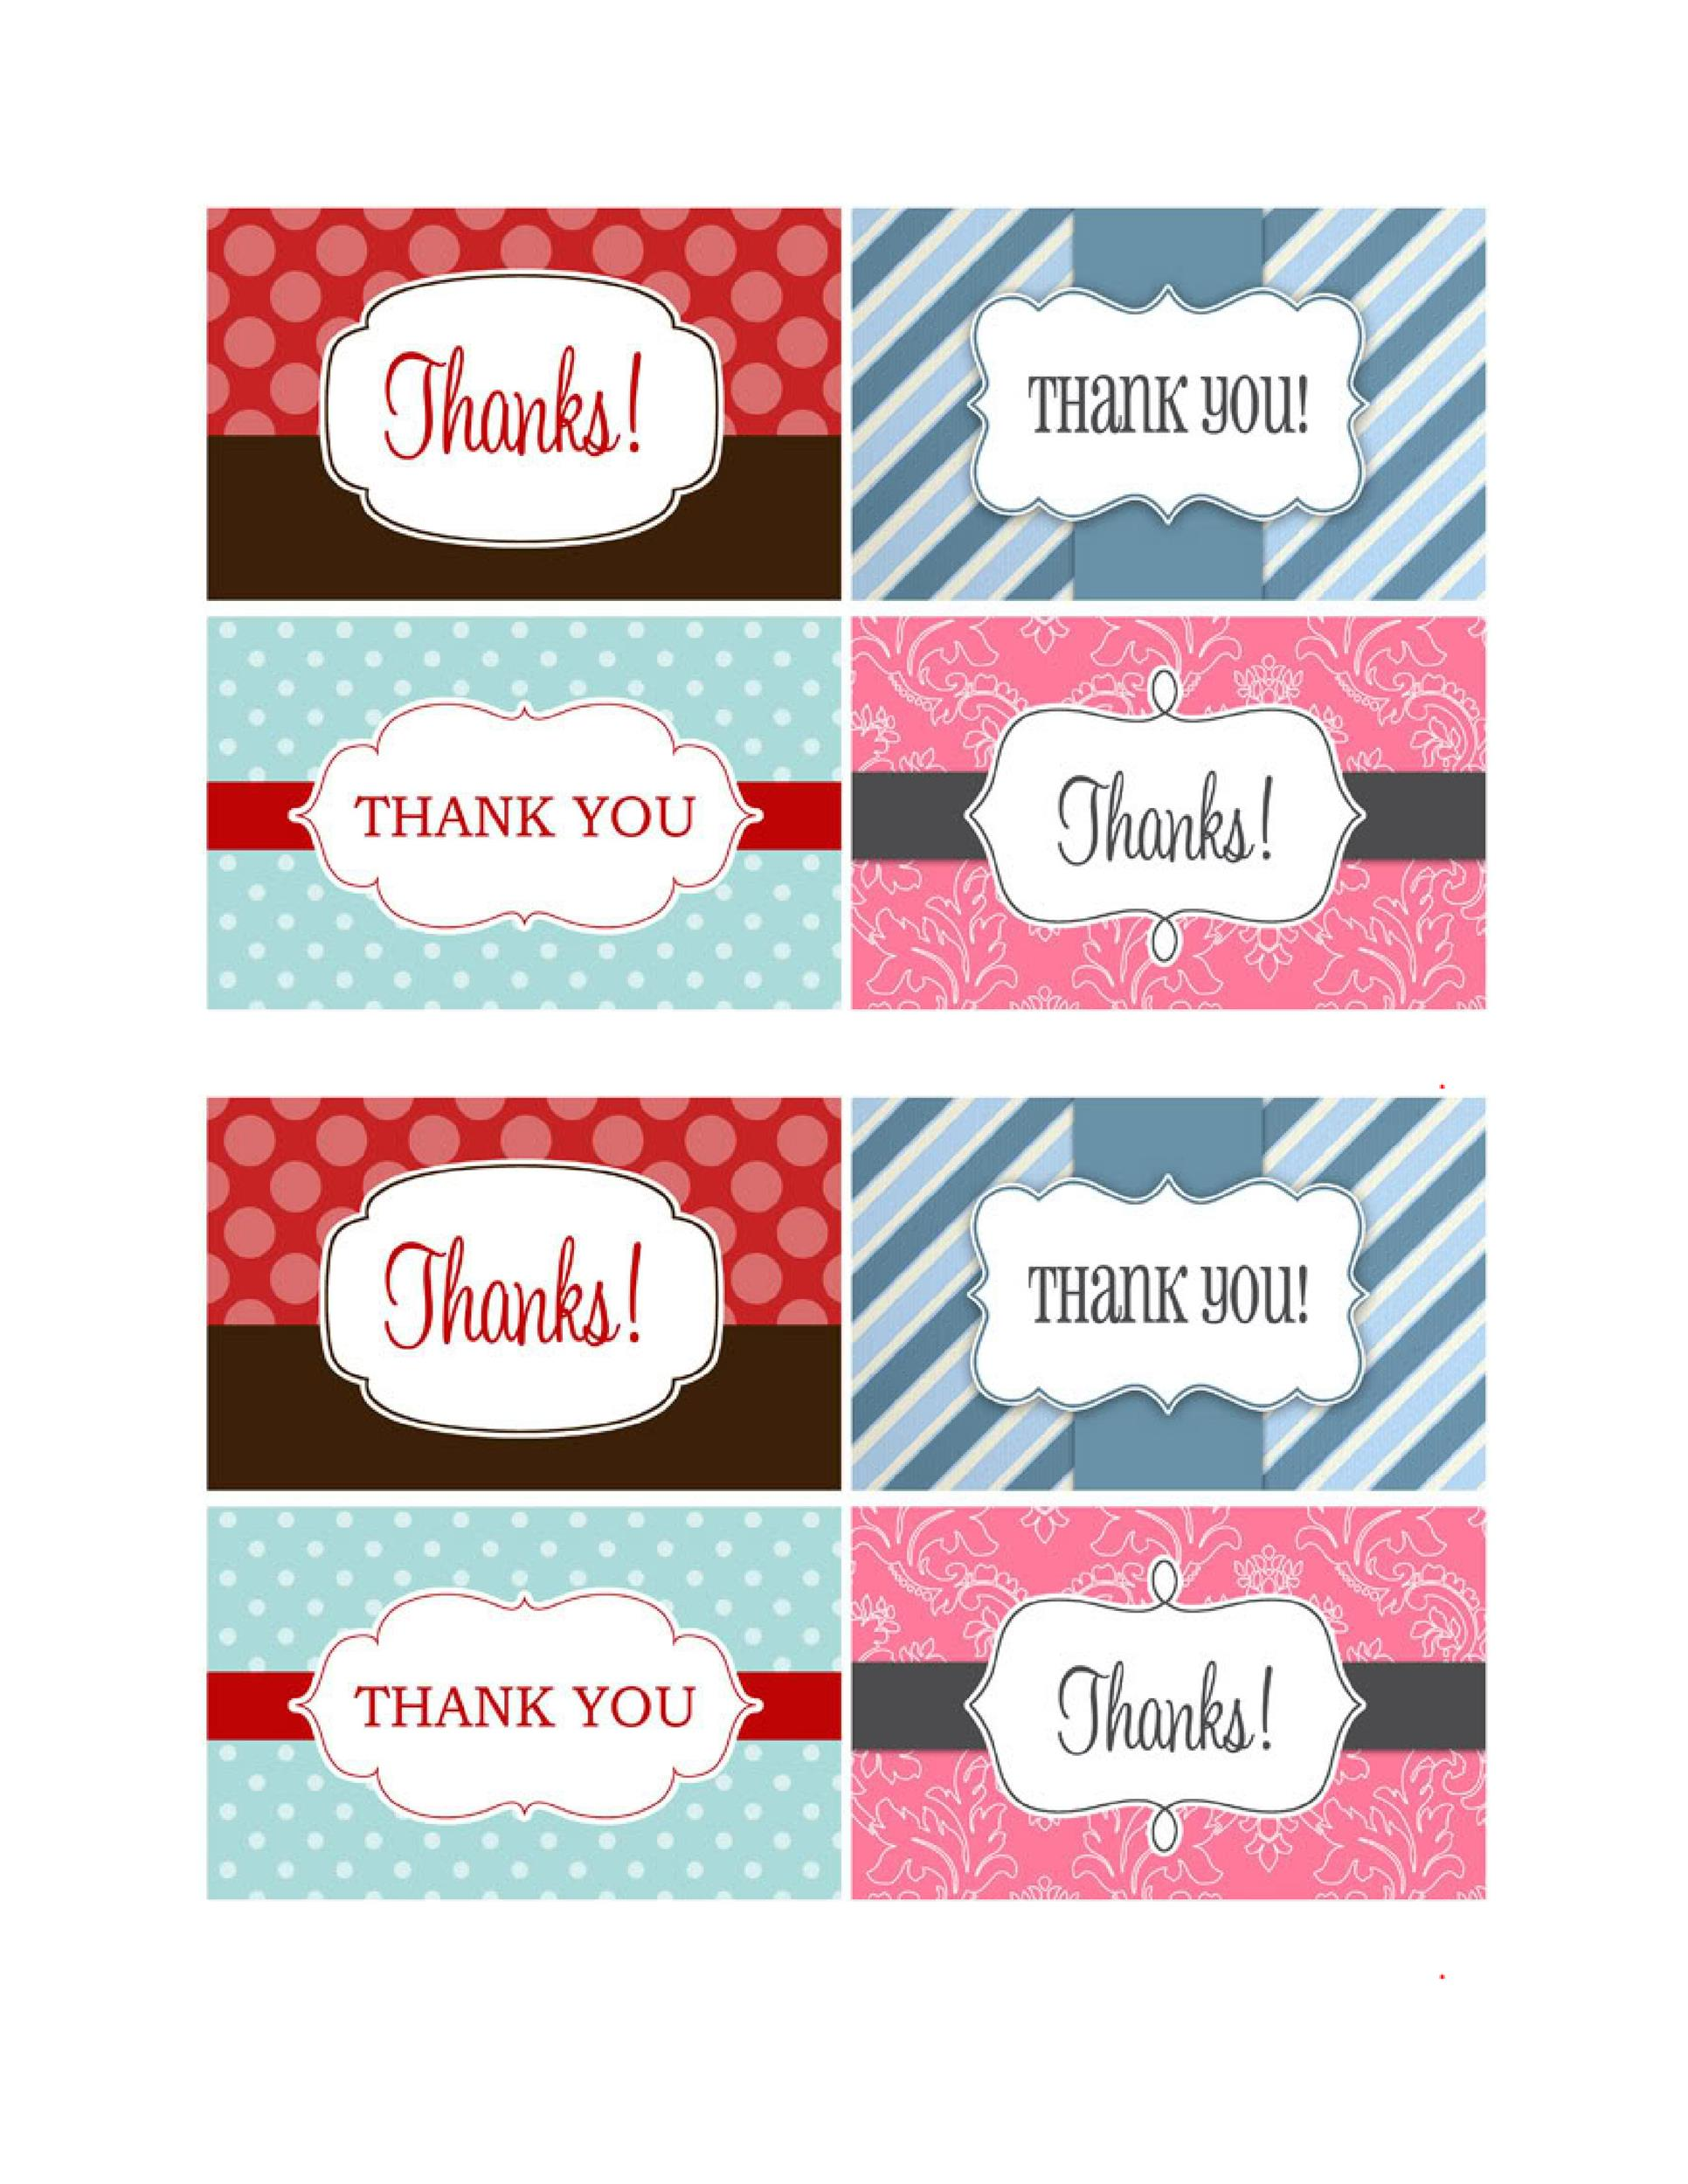 graphic about Thank You Printable Tag identified as 44 Totally free Printable Present Tag Templates ᐅ Template Lab